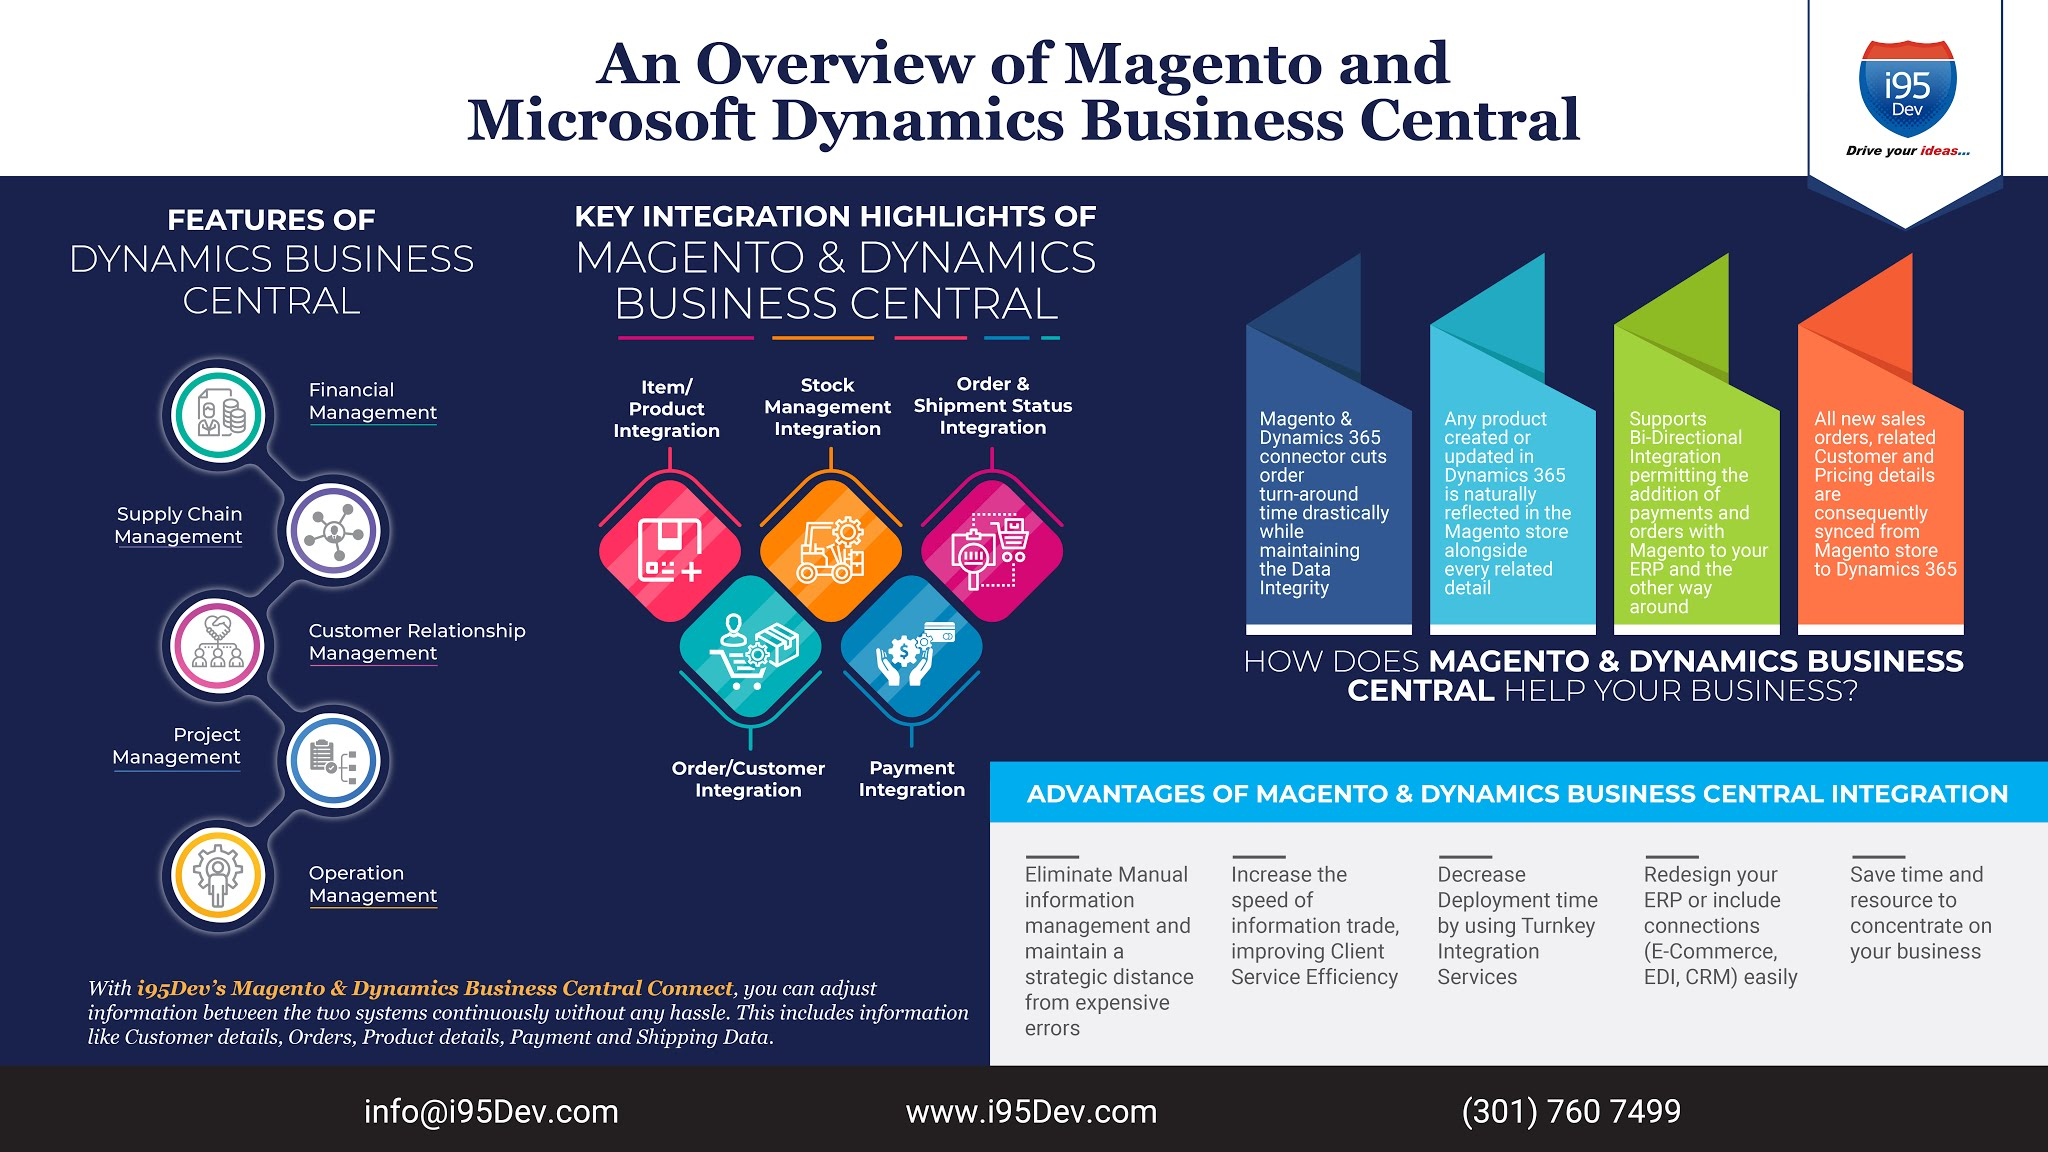 magento and microsoft dynamics business central